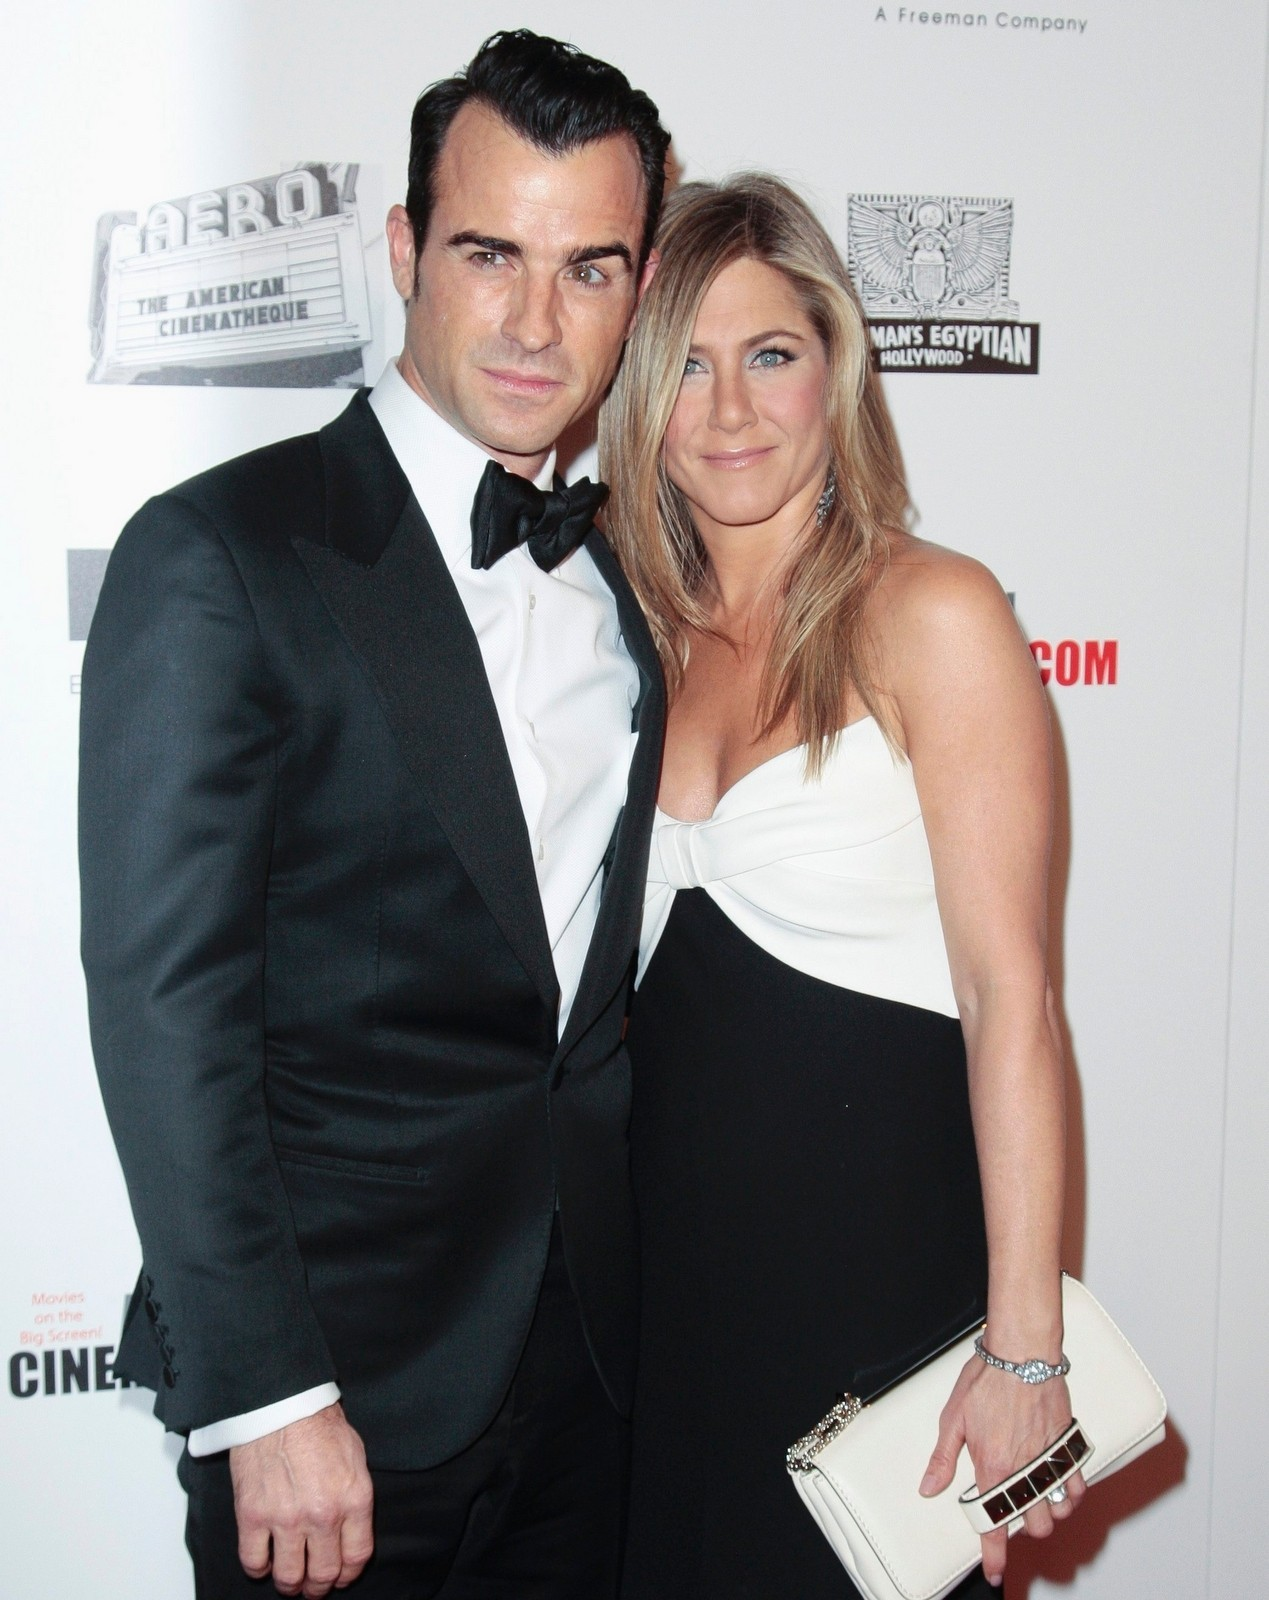 Jennifer Aniston And Justin Theroux Wedding.Jennifer Aniston And Justin Theroux Knot Tying Talk Is The Wedding